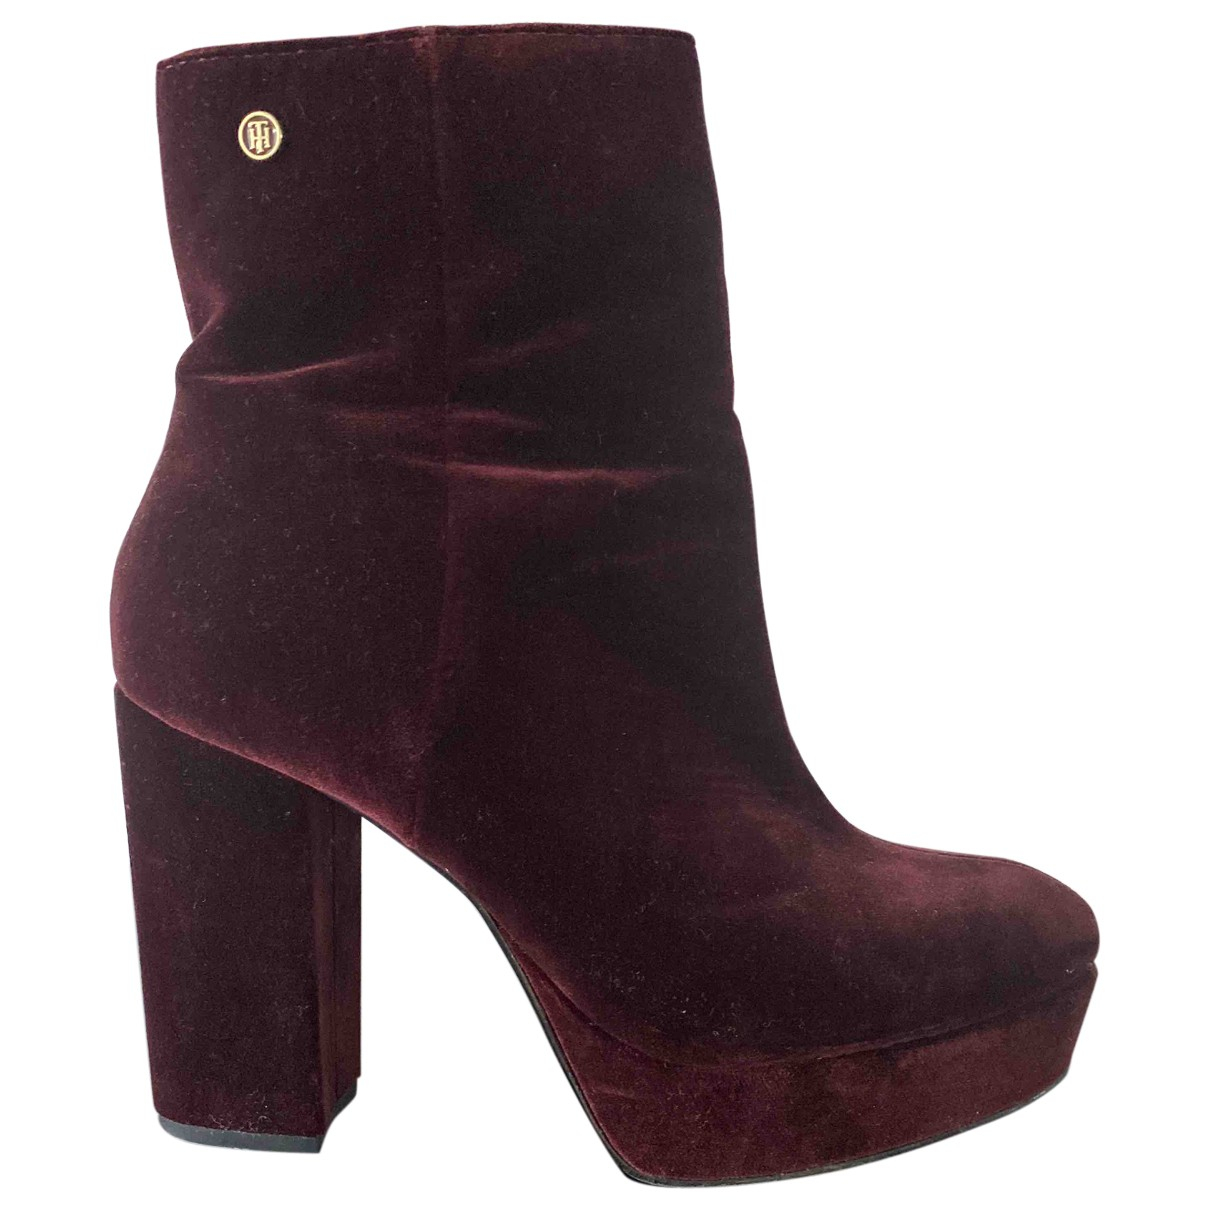 Tommy Hilfiger \N Suede Boots for Women 4 UK